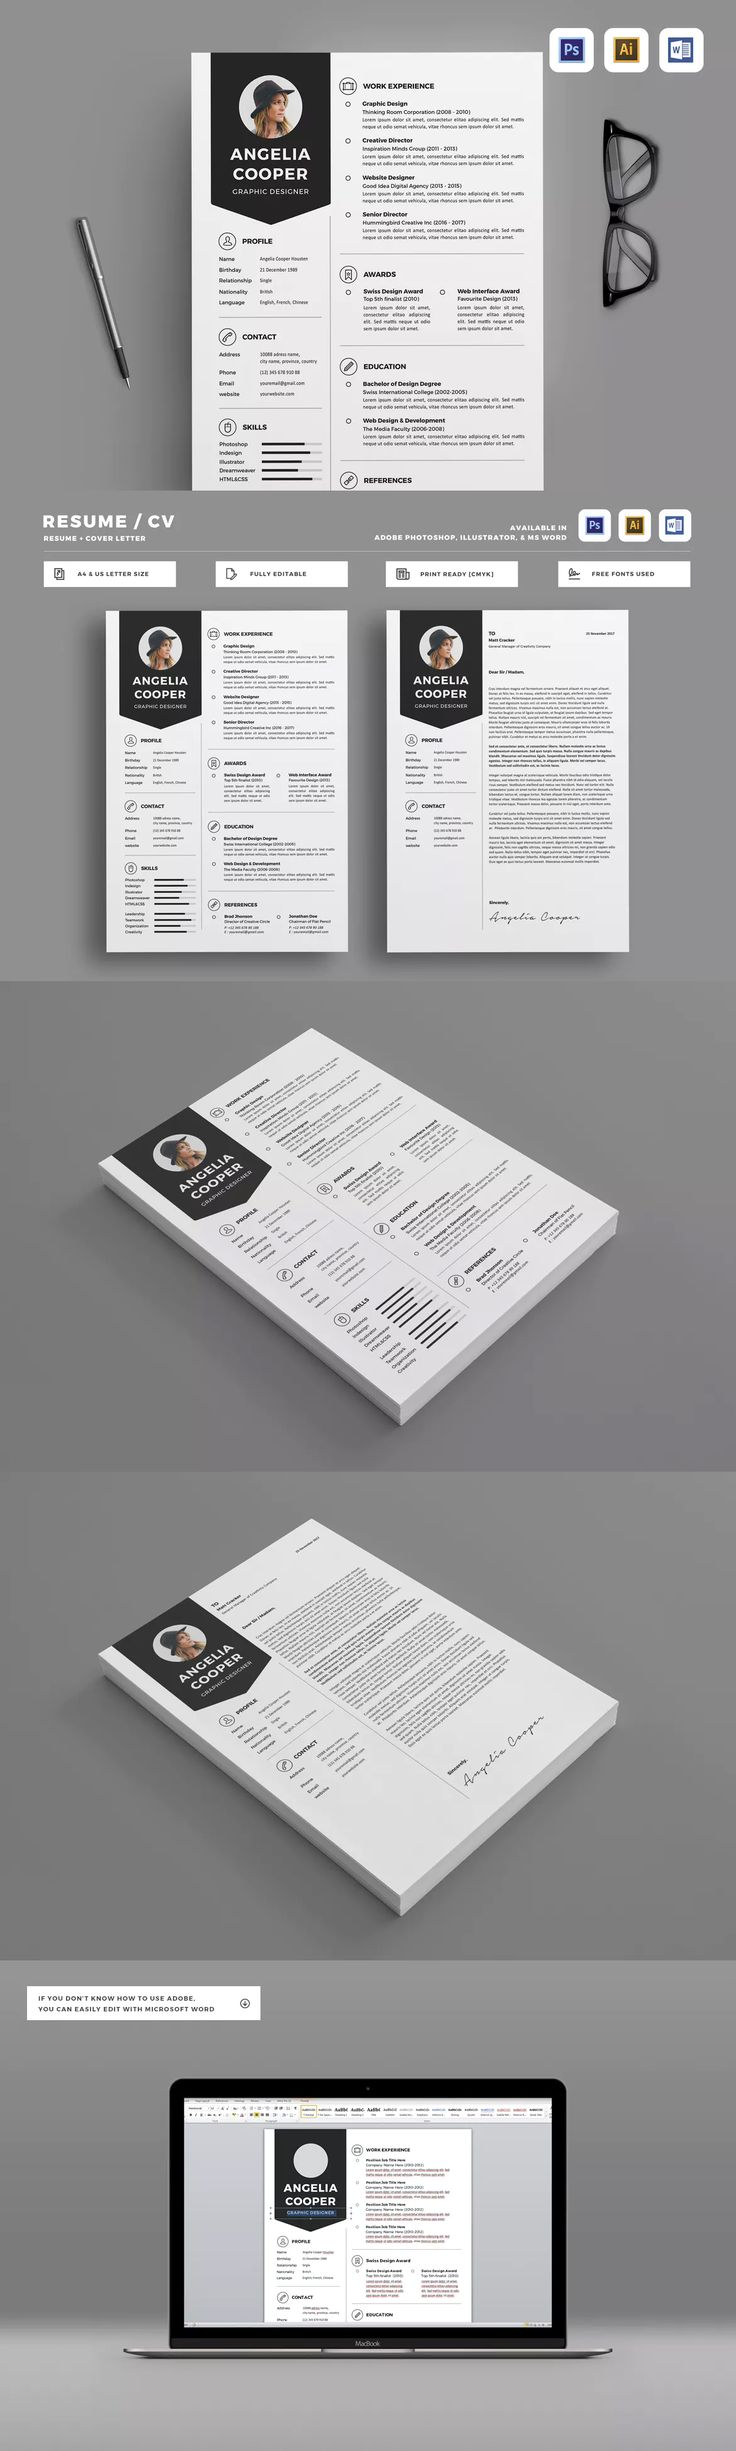 Resume Templates AI EPS PSD 94 best